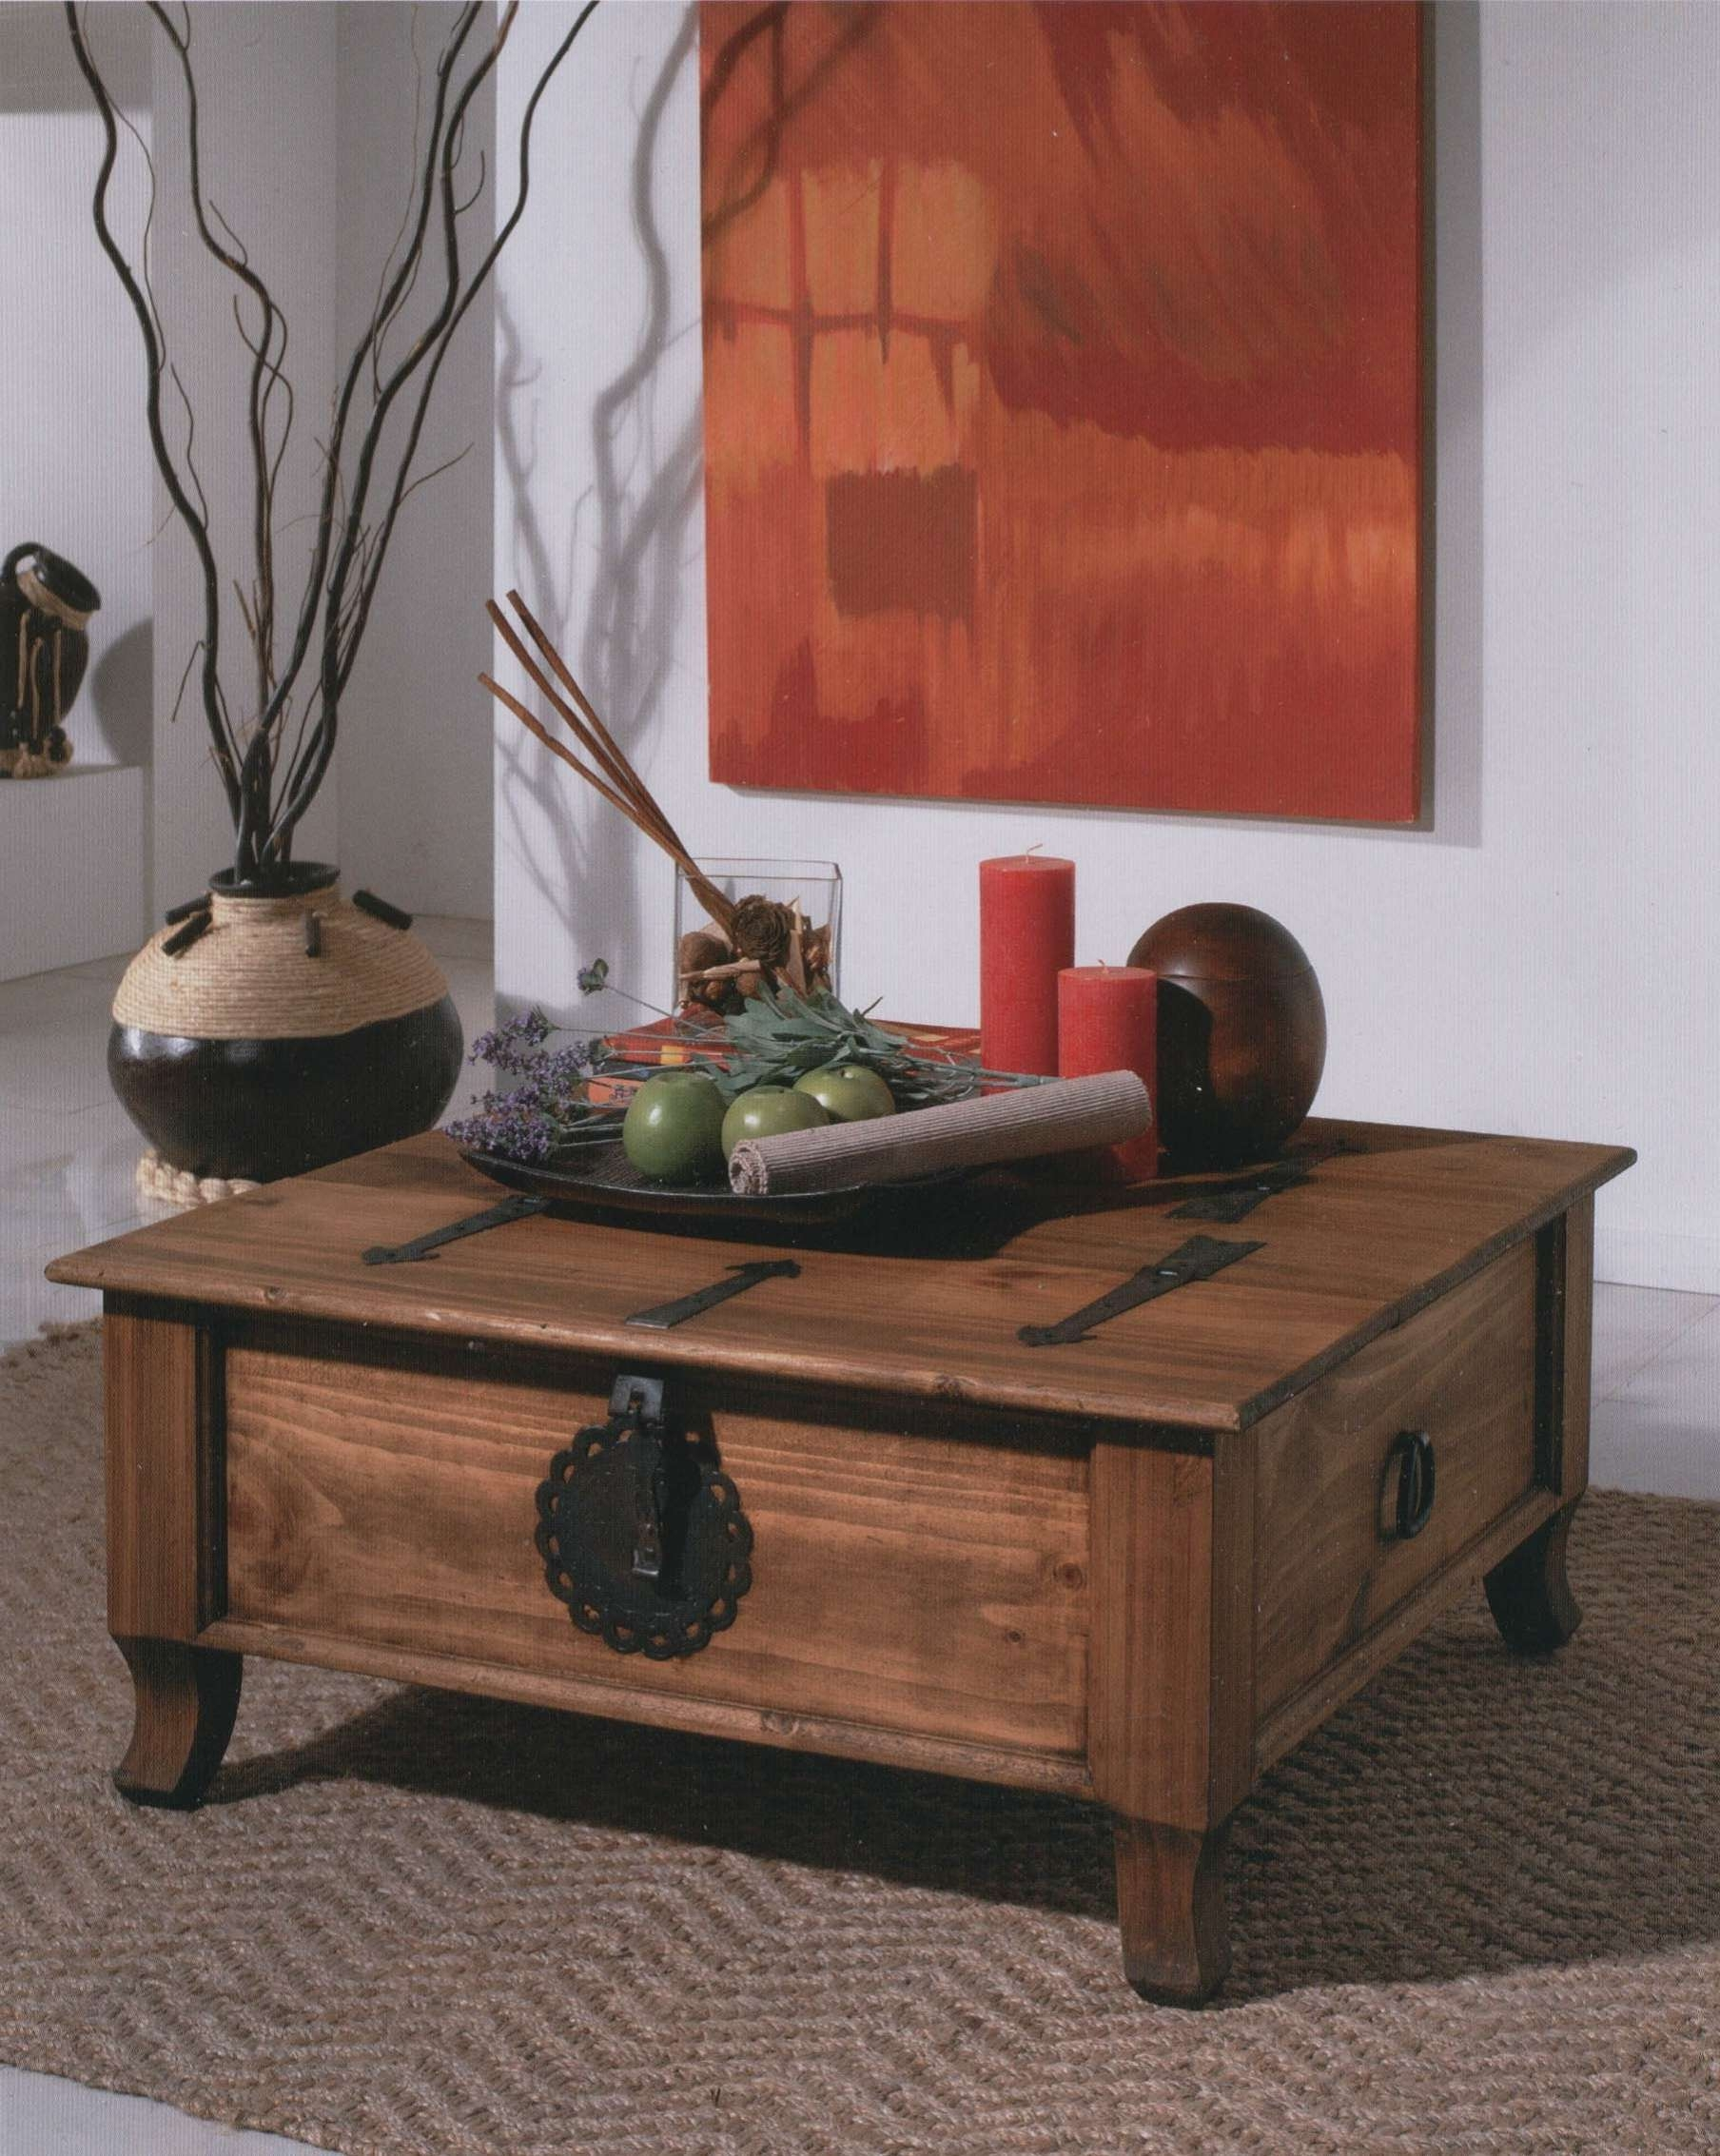 Displaying Gallery of Dark Wood Chest Coffee Tables View 3 of 20